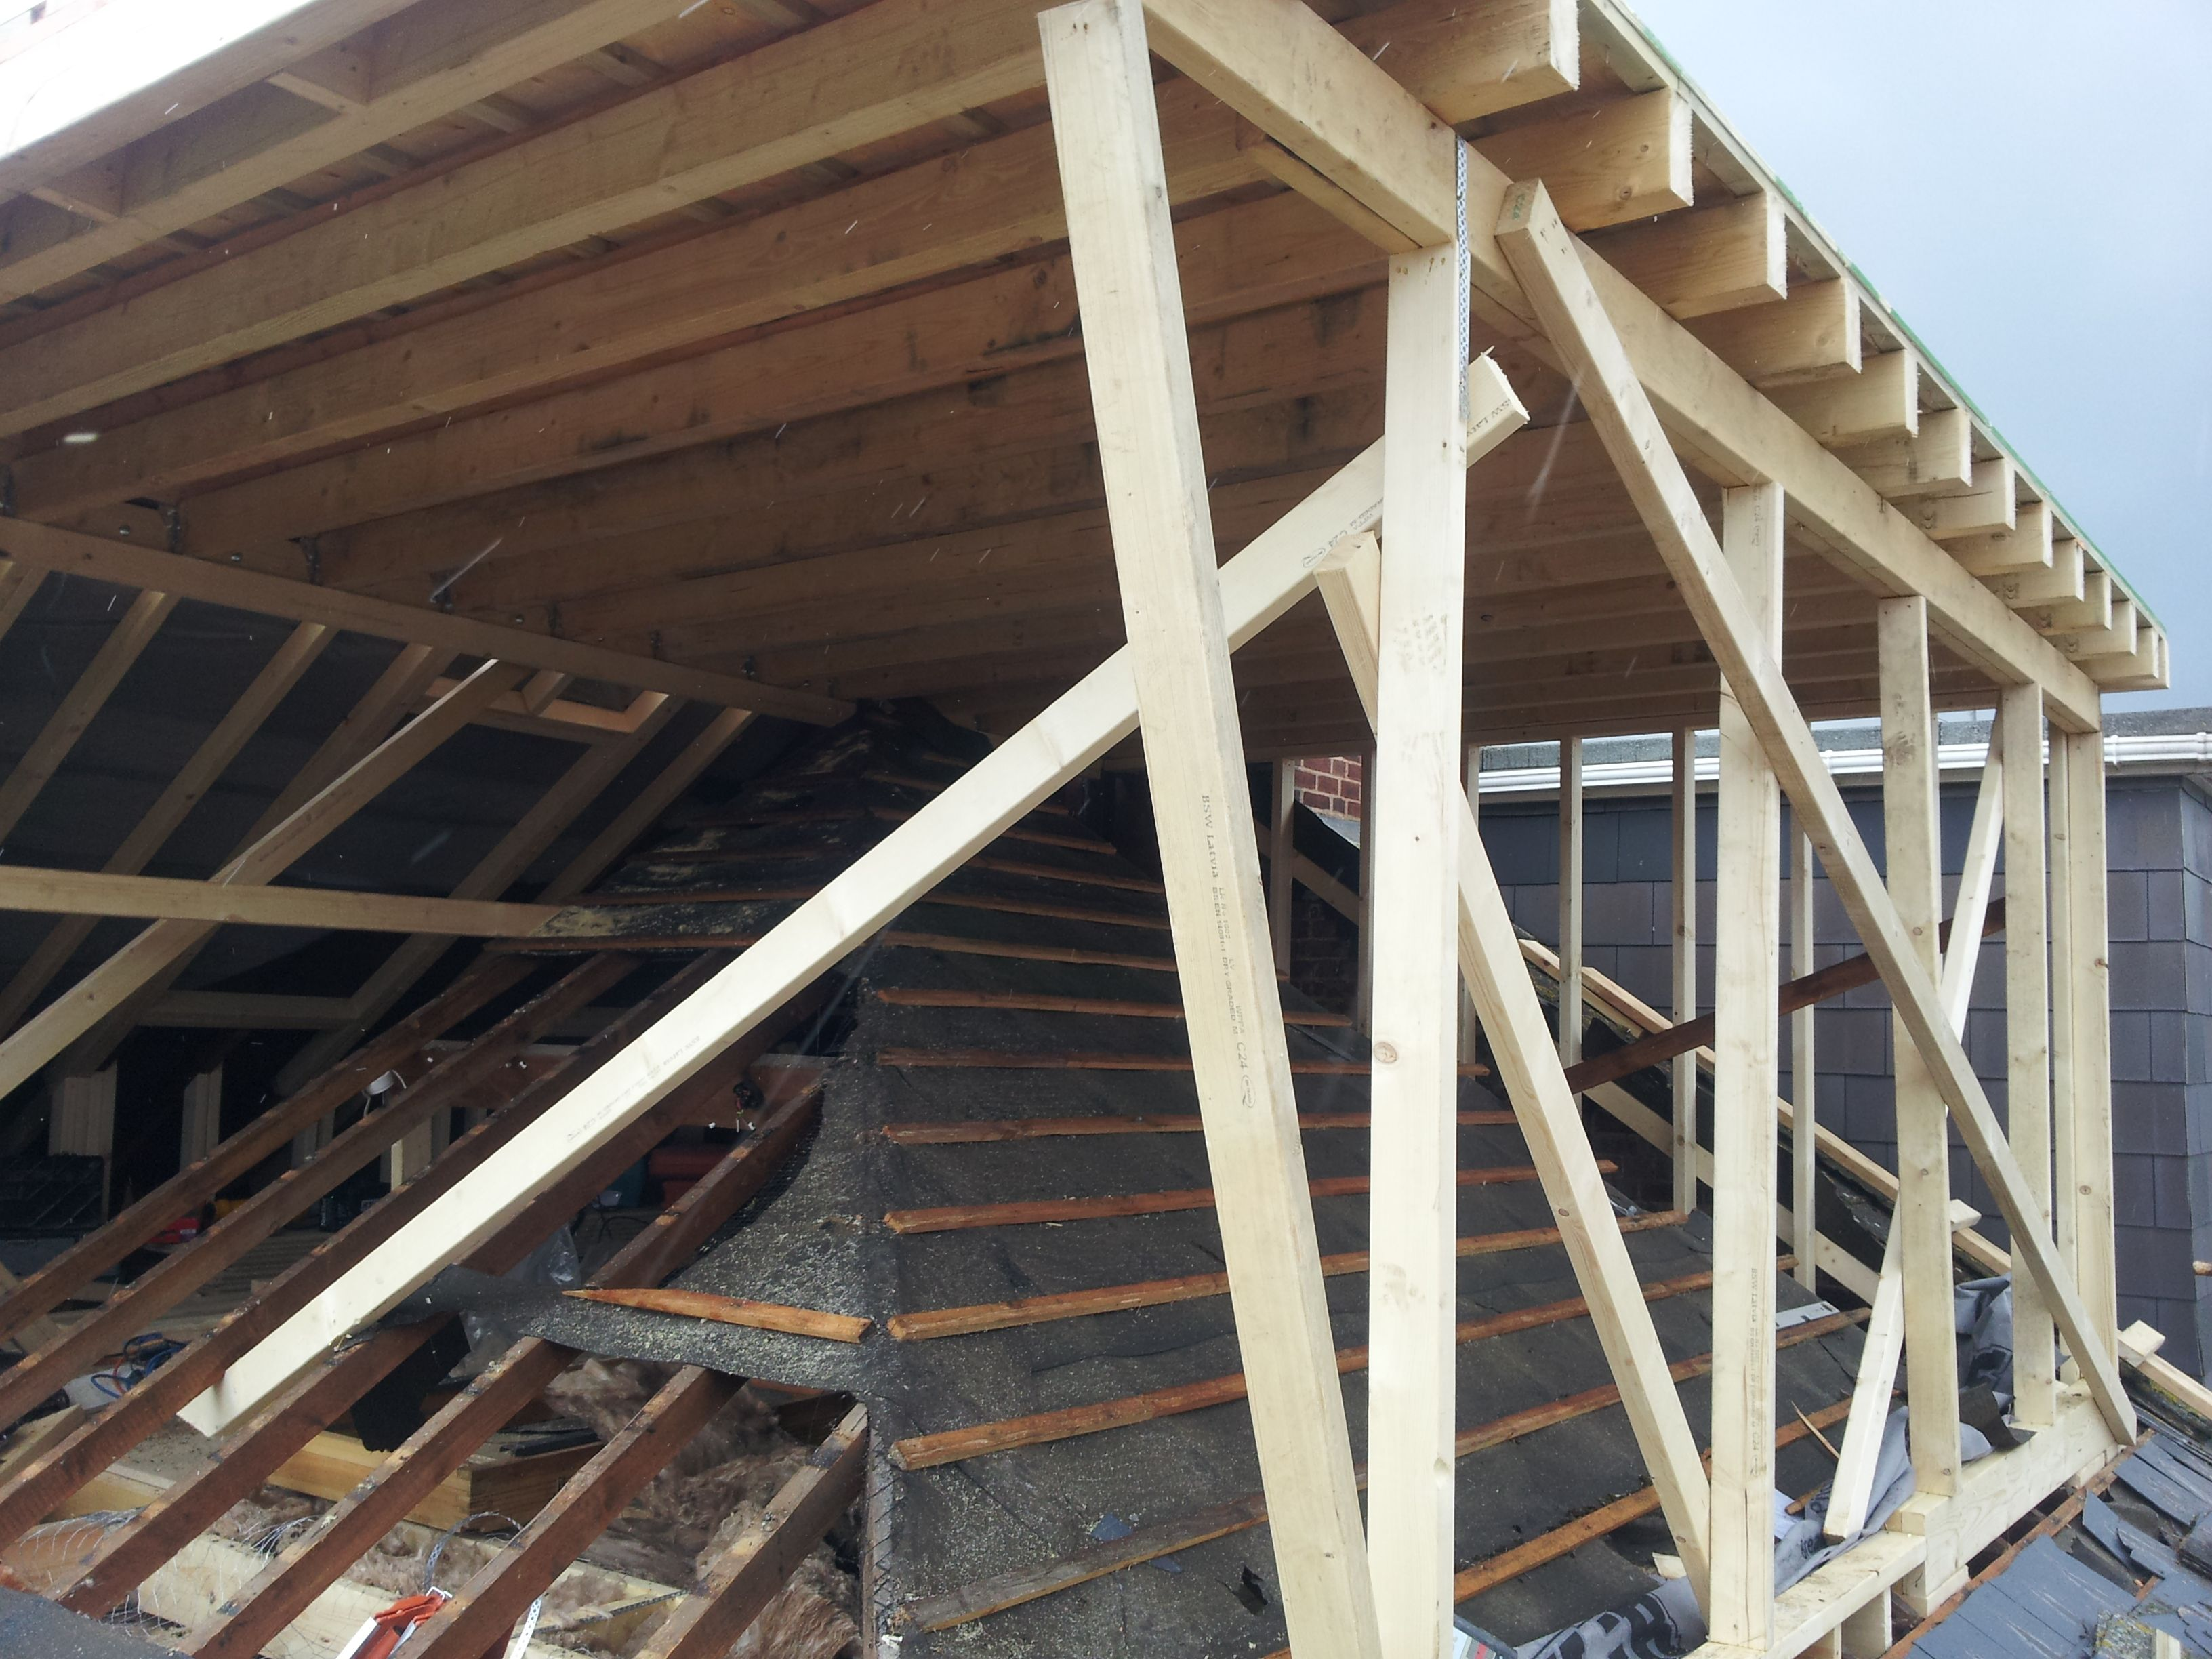 Hip-to-gable loft conversion mid construction. Flat roof ...